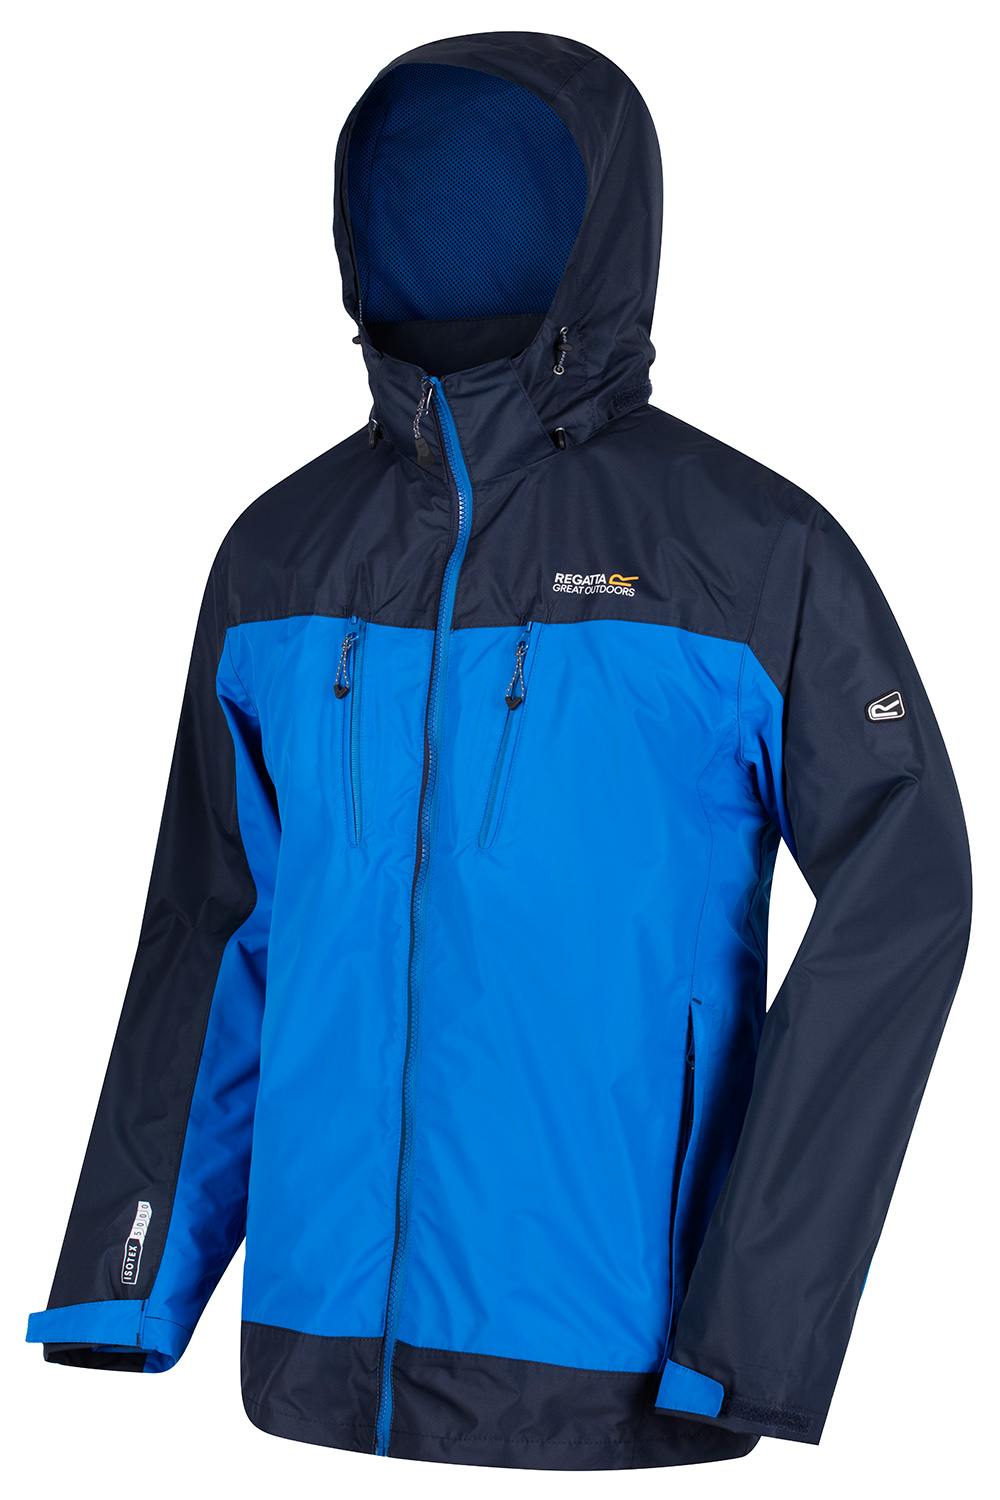 Regatta-Mens-Calderdale-II-Jacket-Waterproof-Breathable-Isotex-5000-Hooded-Coat thumbnail 10